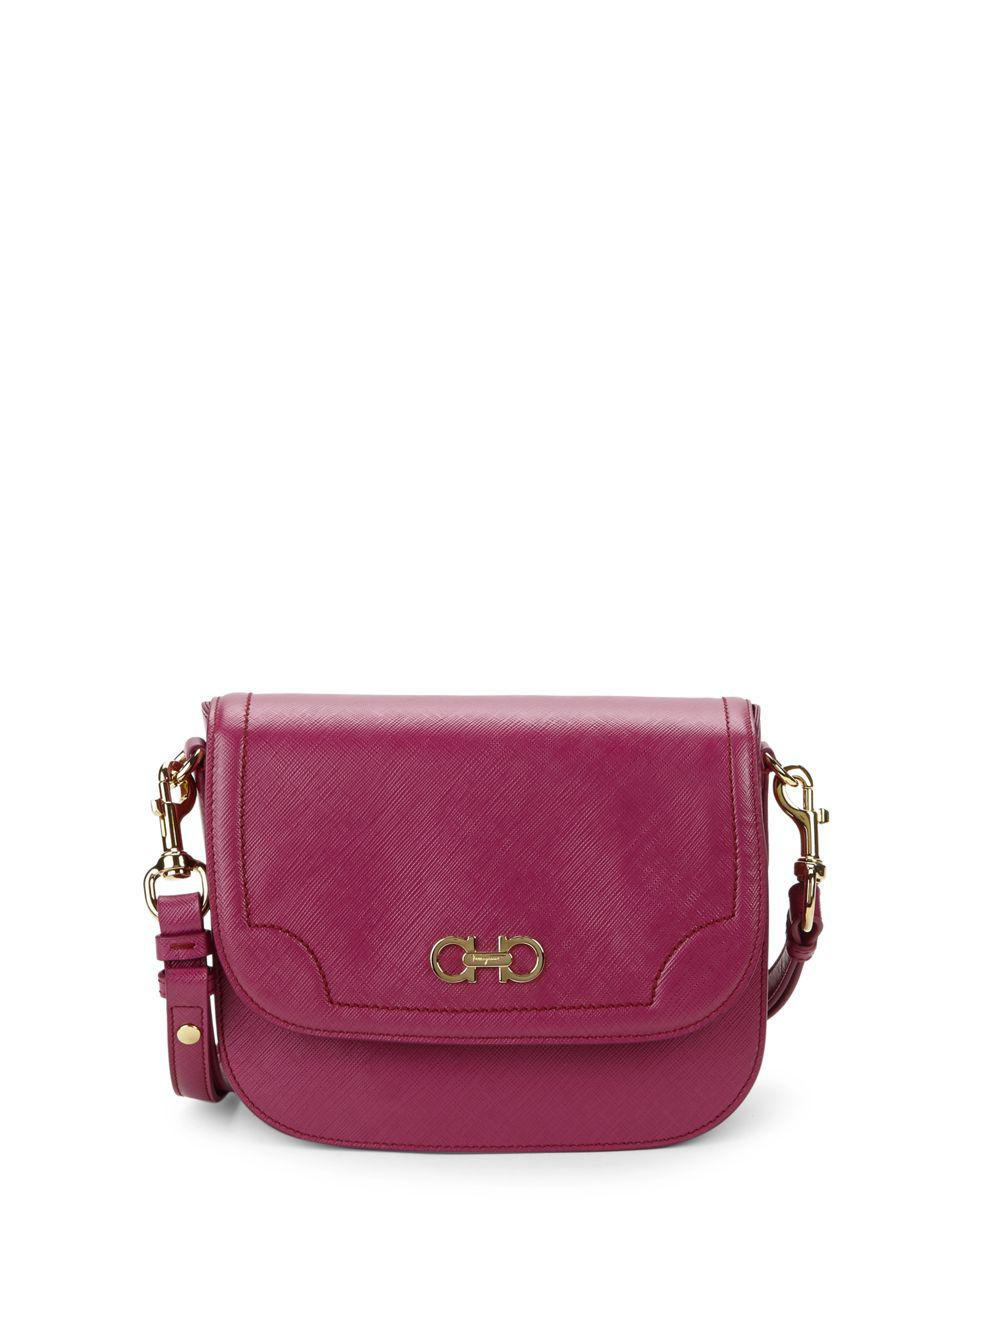 04e7313dbad4 Lyst - Ferragamo Leather Saddle Shoulder Bag in Pink